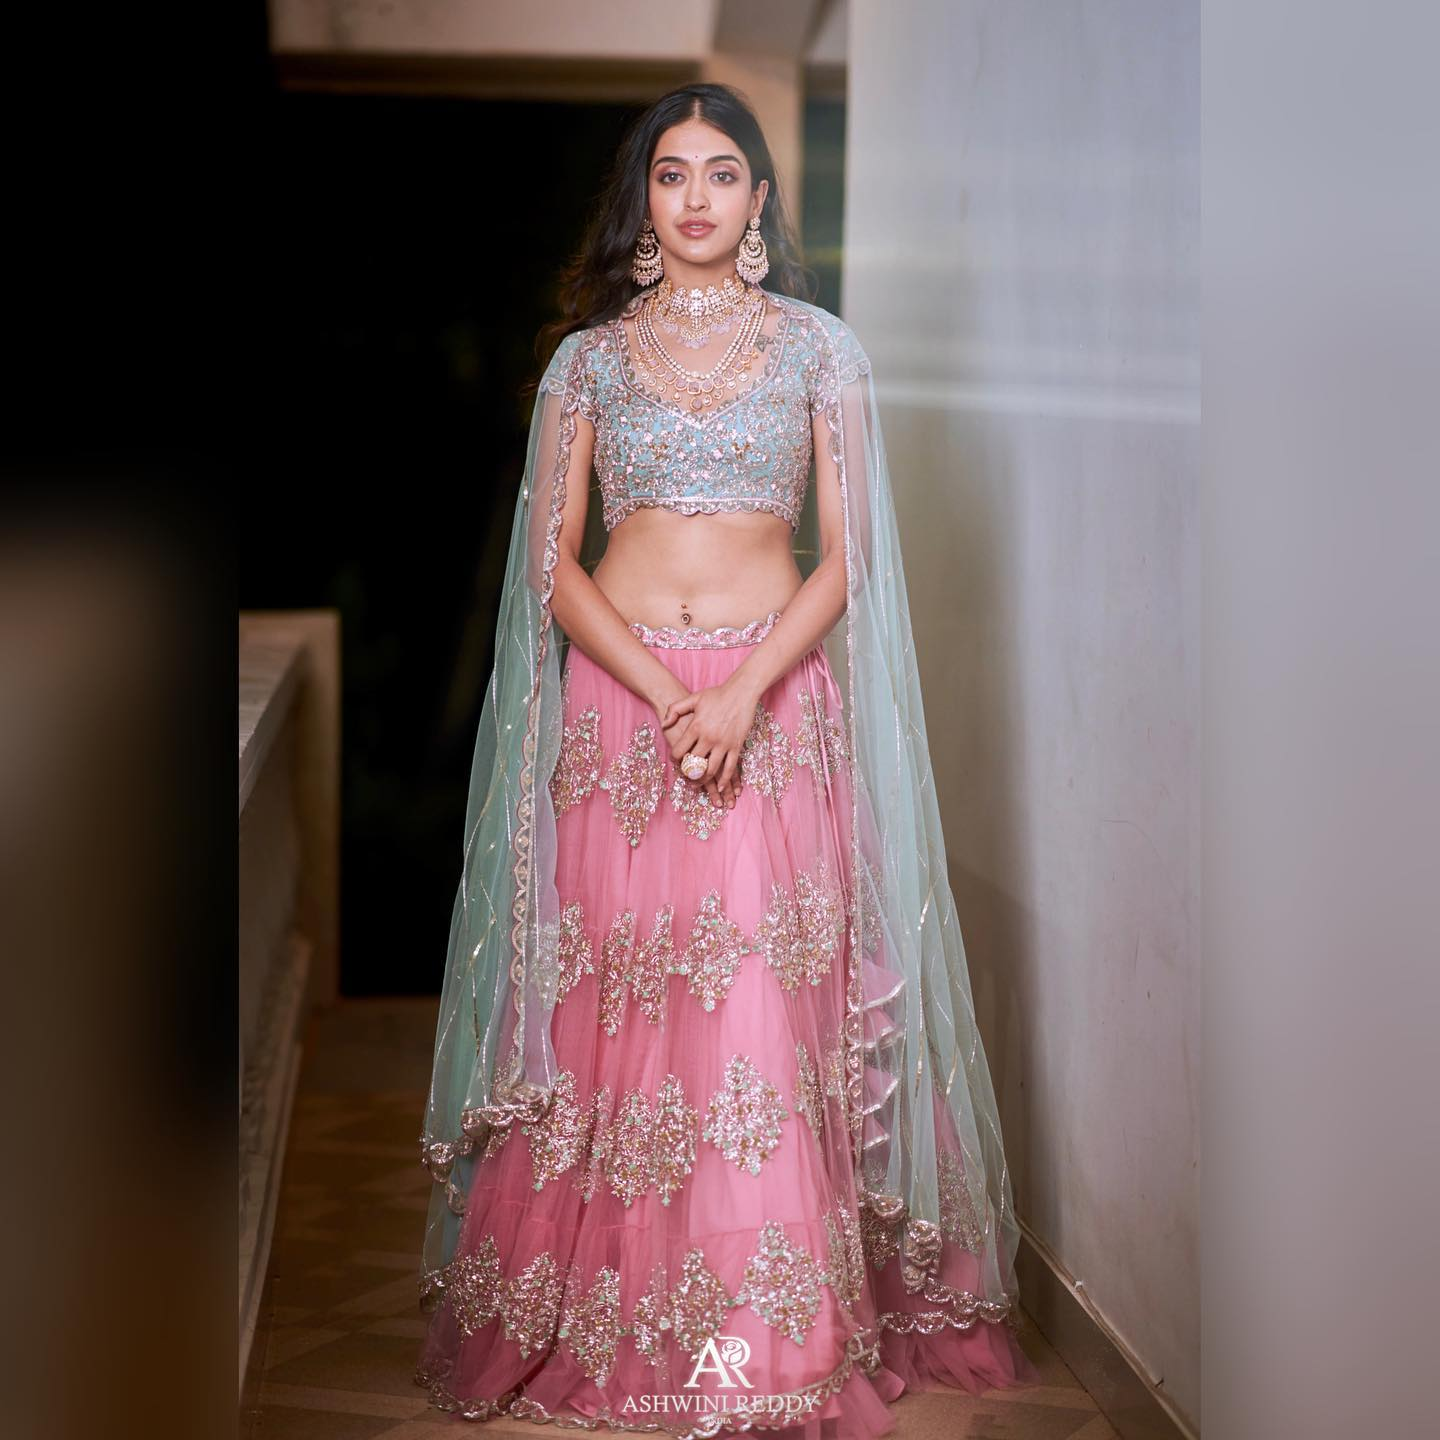 Ashwini Reddy X pmj_jewels . First from Ashwini Reddy upcoming collection! Stunning blush pink color lehenga and ice blue color blouse with long cpae sleeves. Styled by jukalker. PC Shreyansdungarwal. 2020-09-21